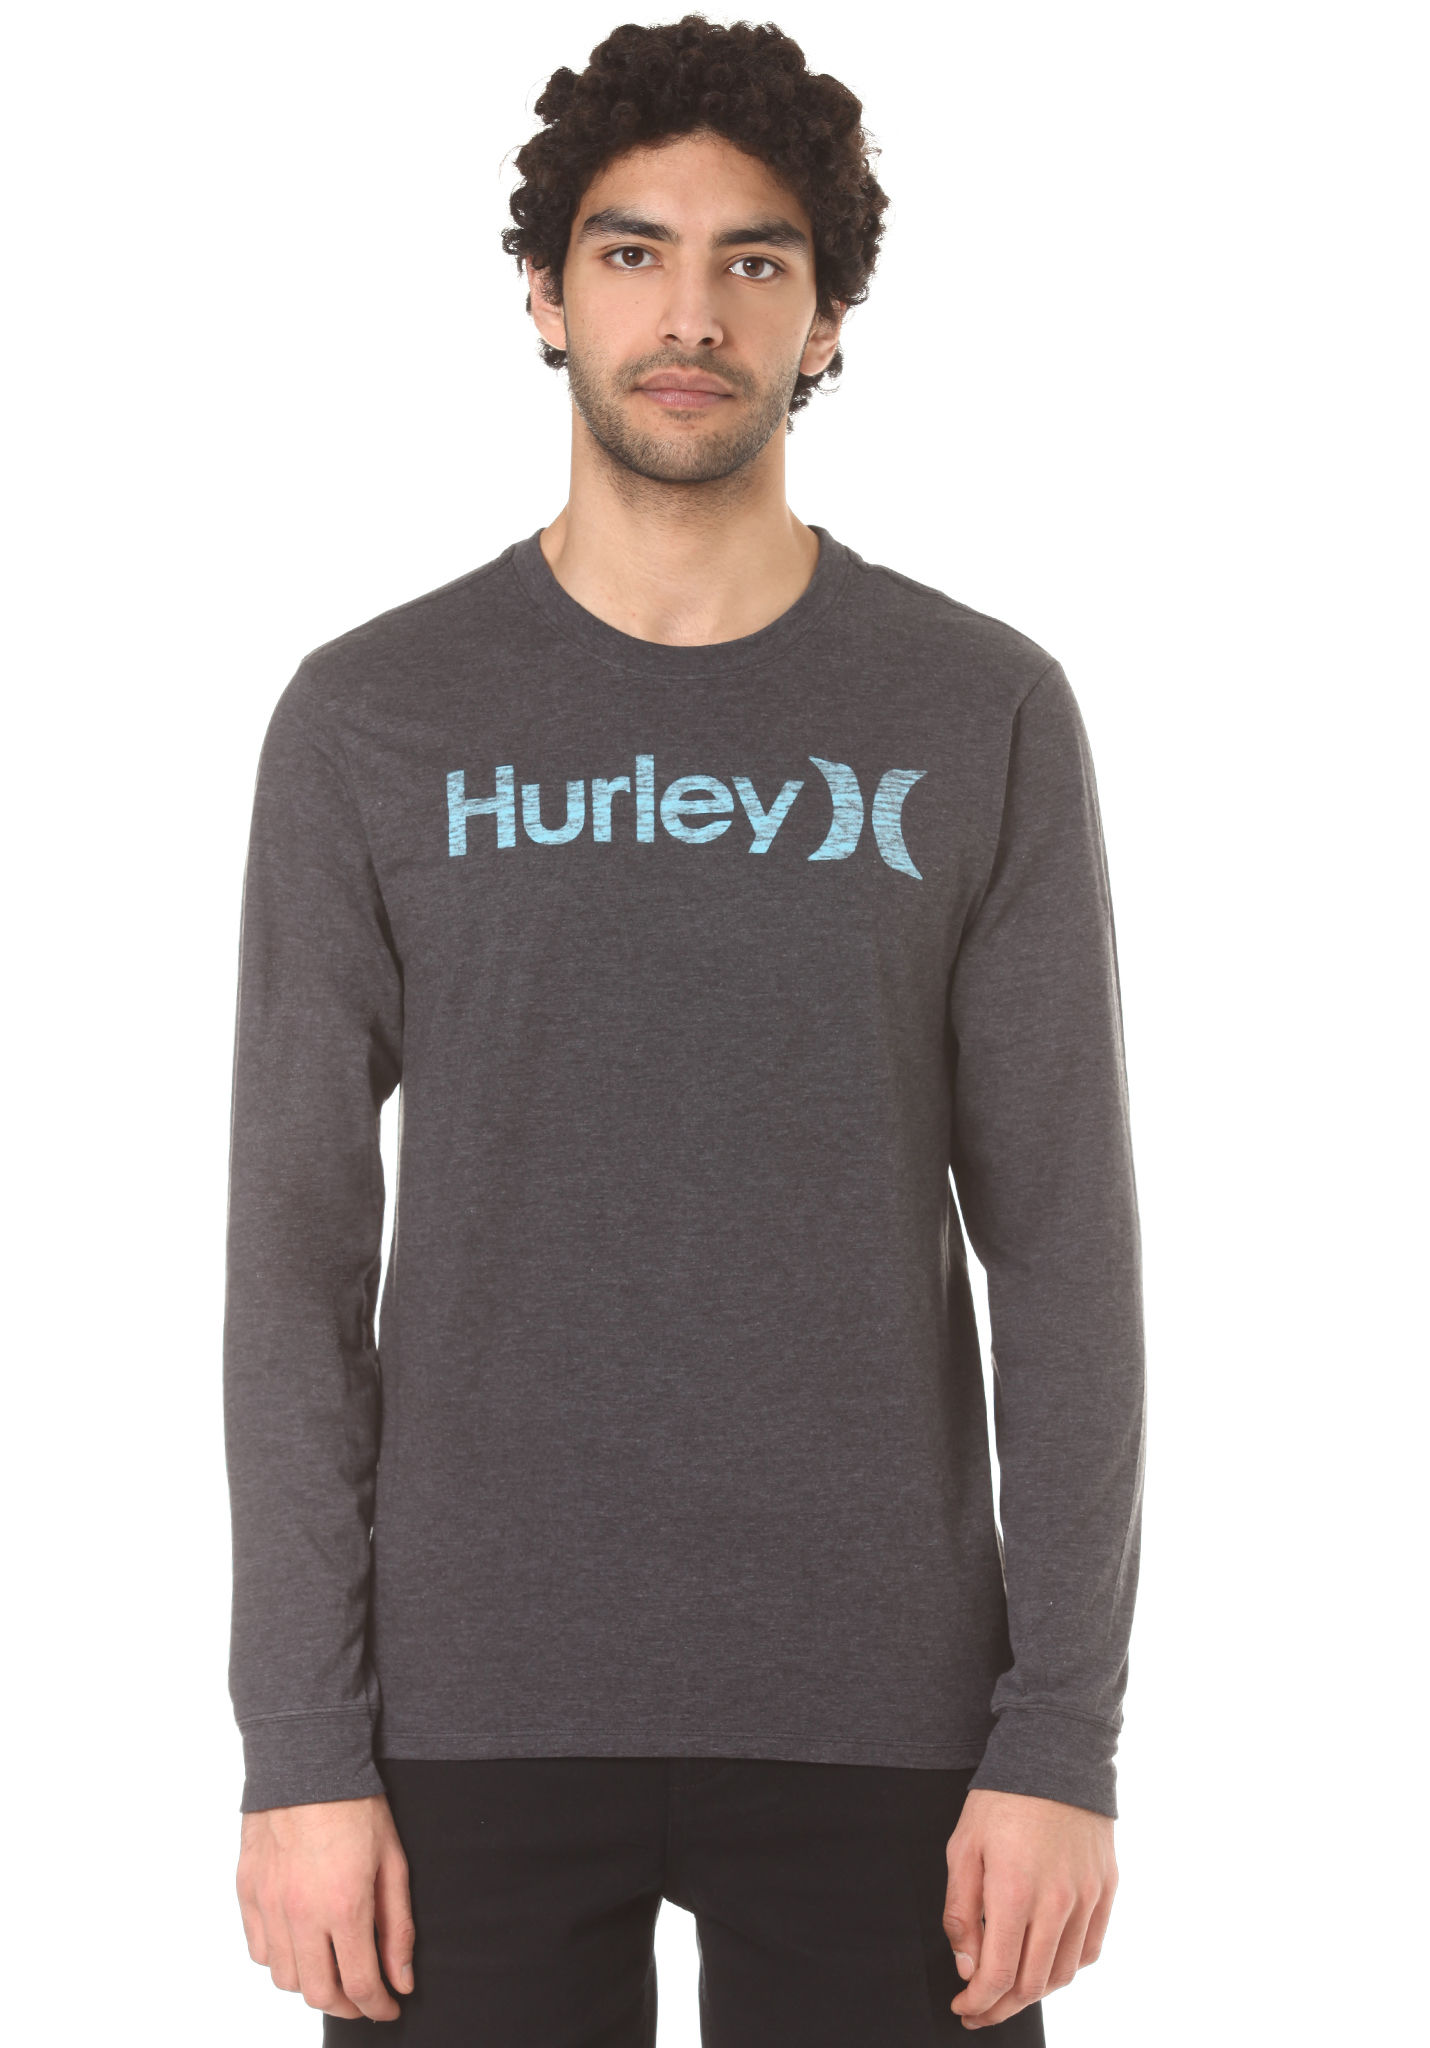 8c376cf394 Hurley One & Only Push Through - Long-sleeved Shirt for Men - Black -  Planet Sports